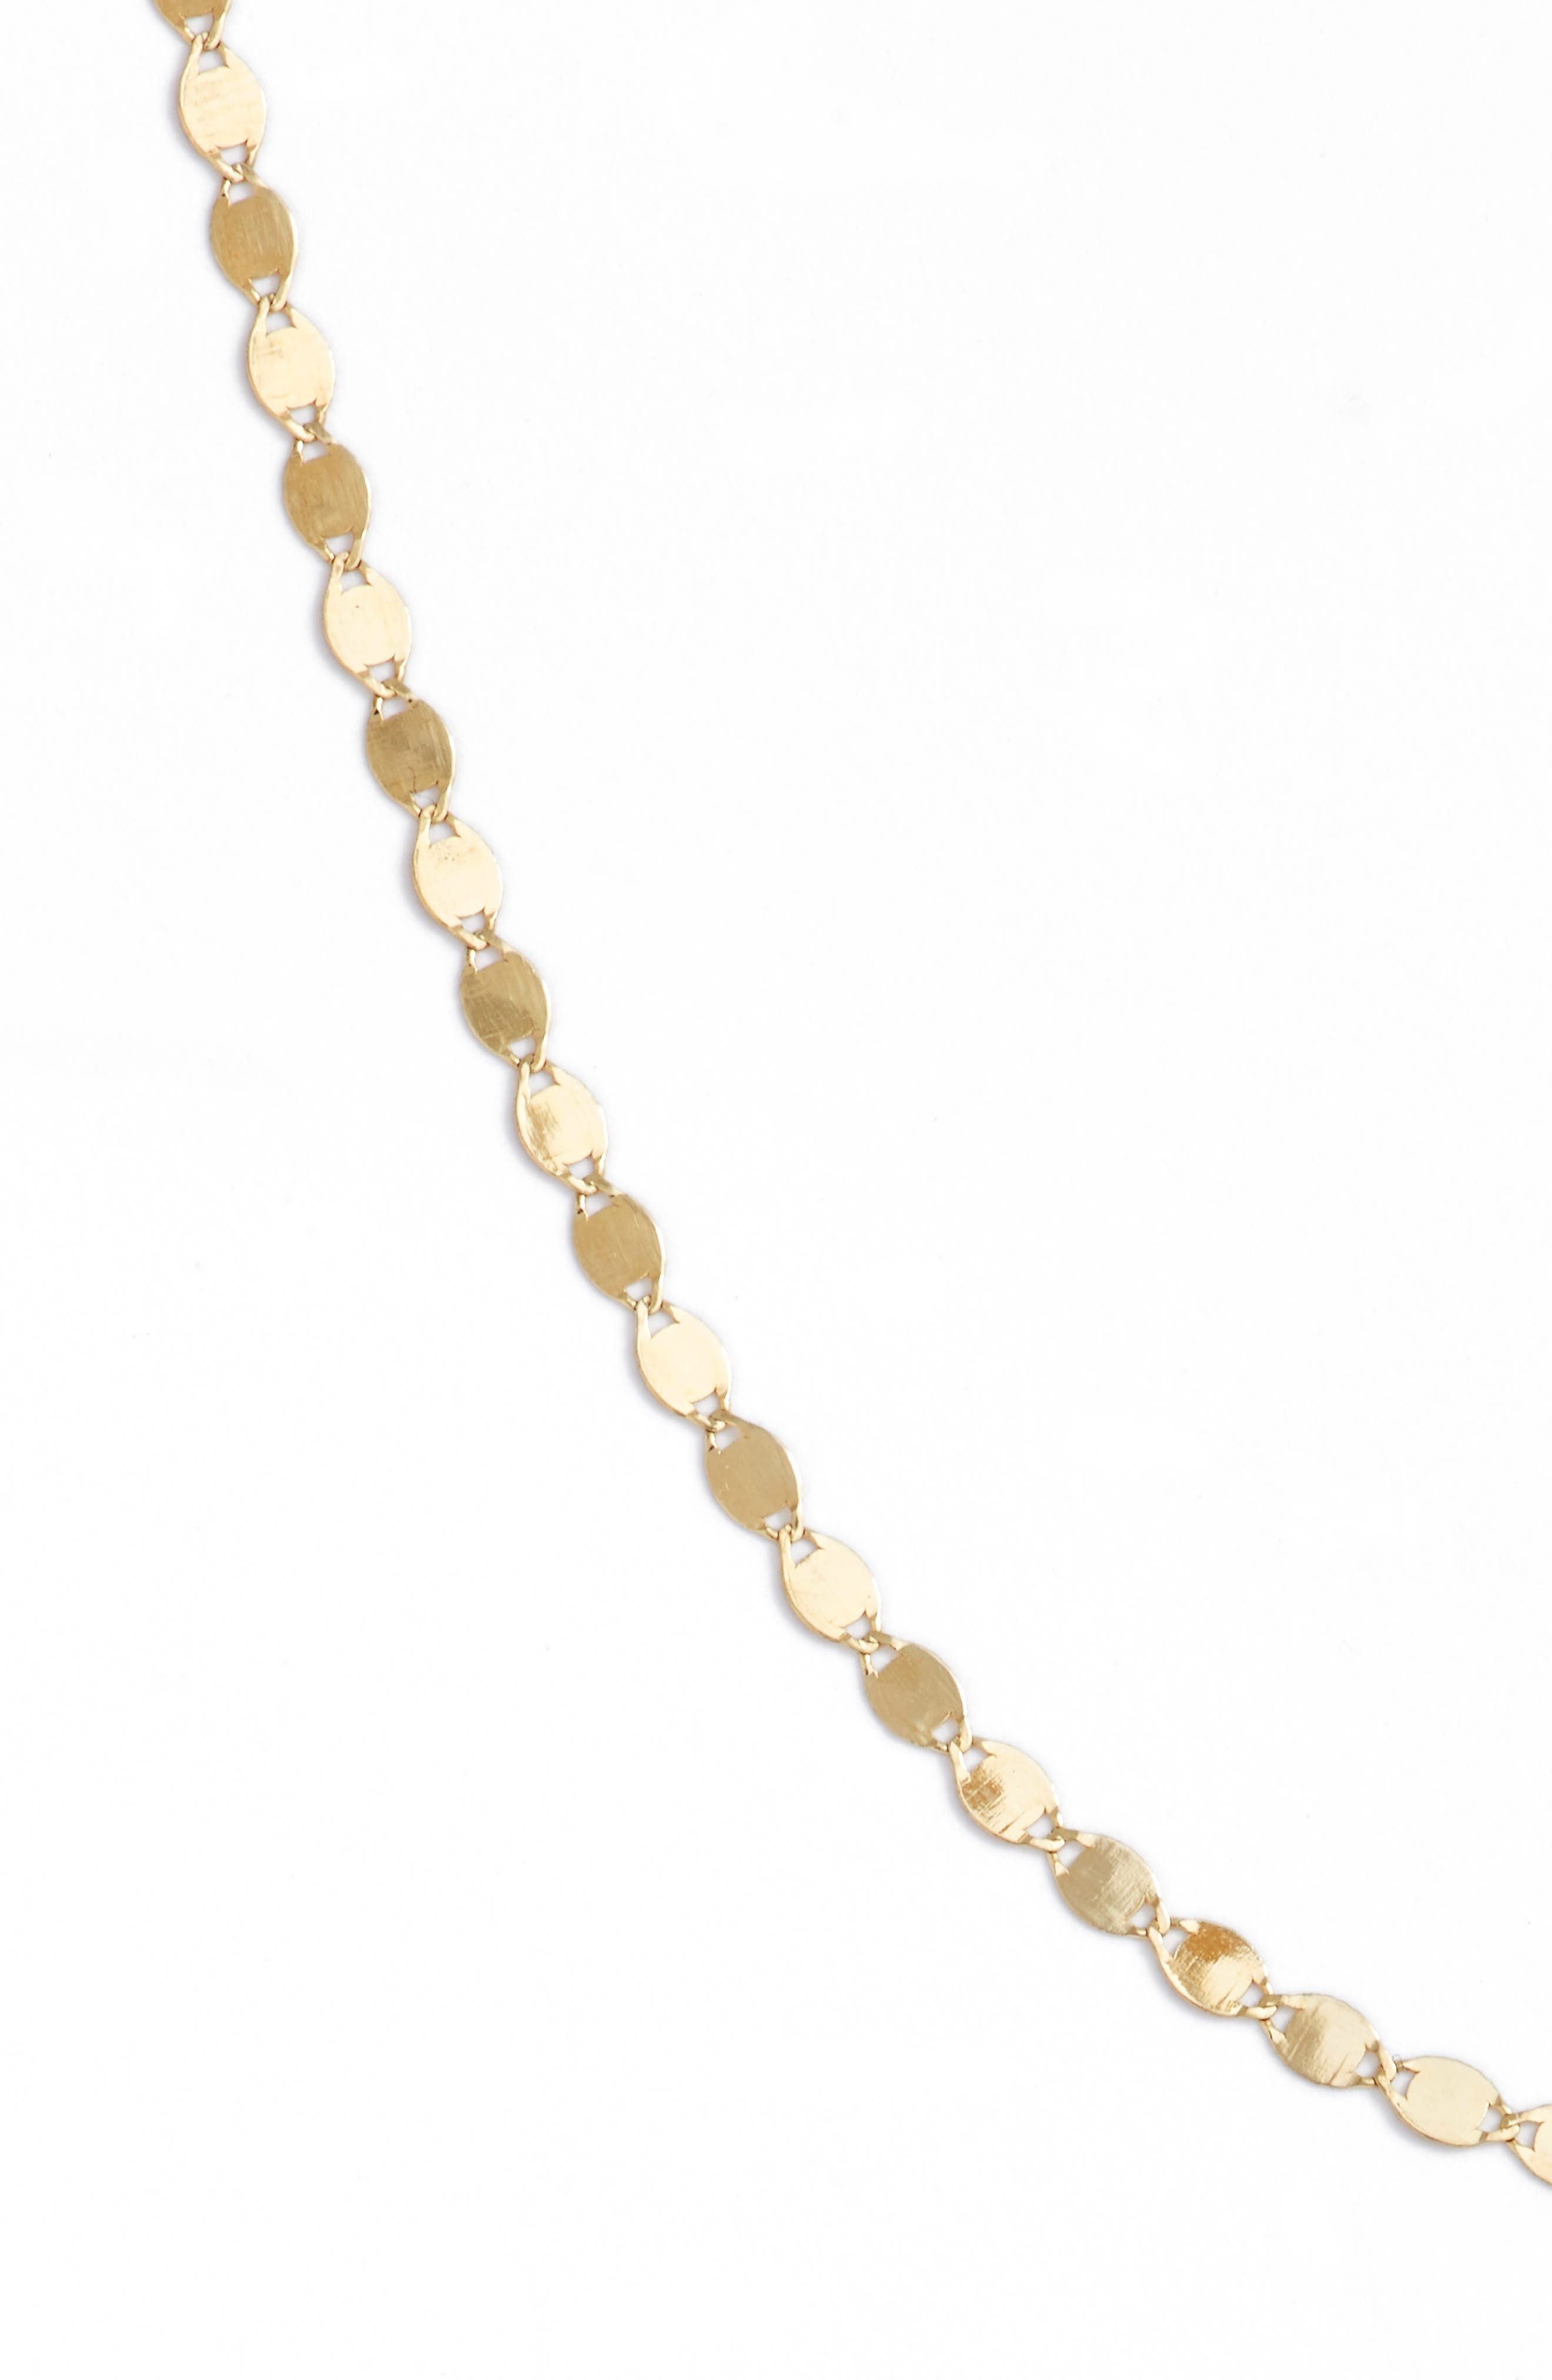 Petite Nude Chain Choker,                             Alternate thumbnail 5, color,                             YELLOW GOLD